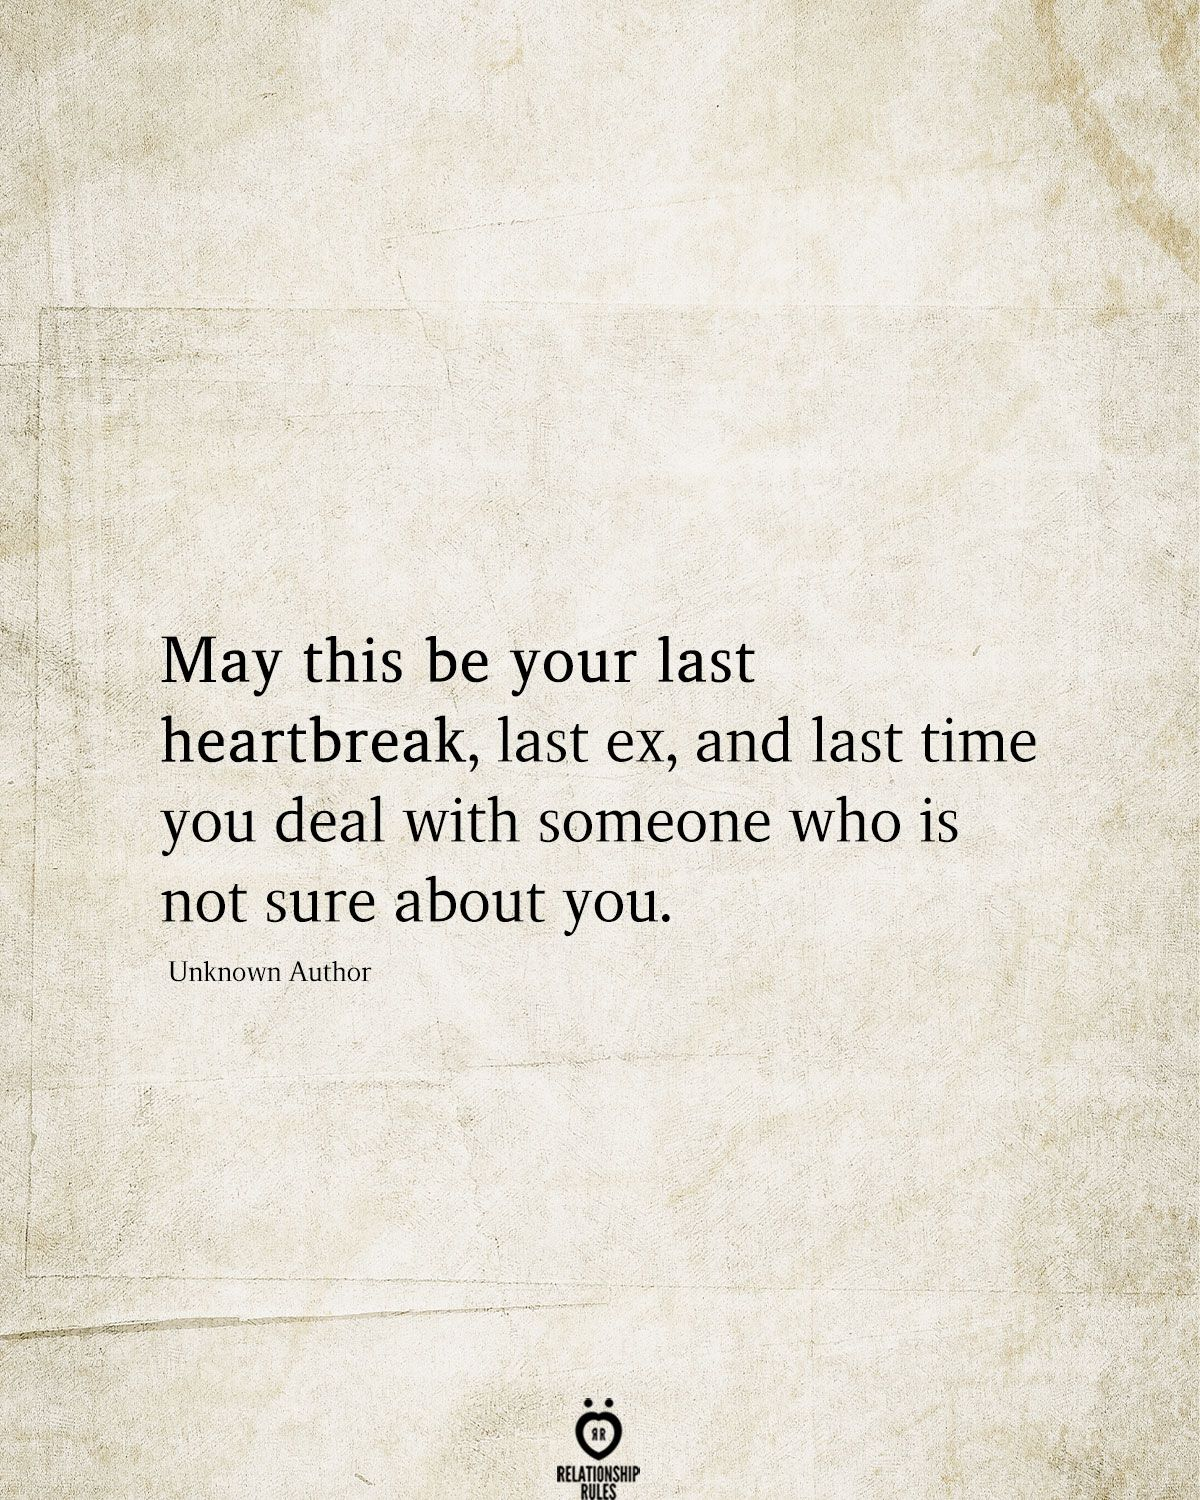 May this be your last heartbreak, last ex, and last time you deal with someone who is not sure about you.  Unknown Author